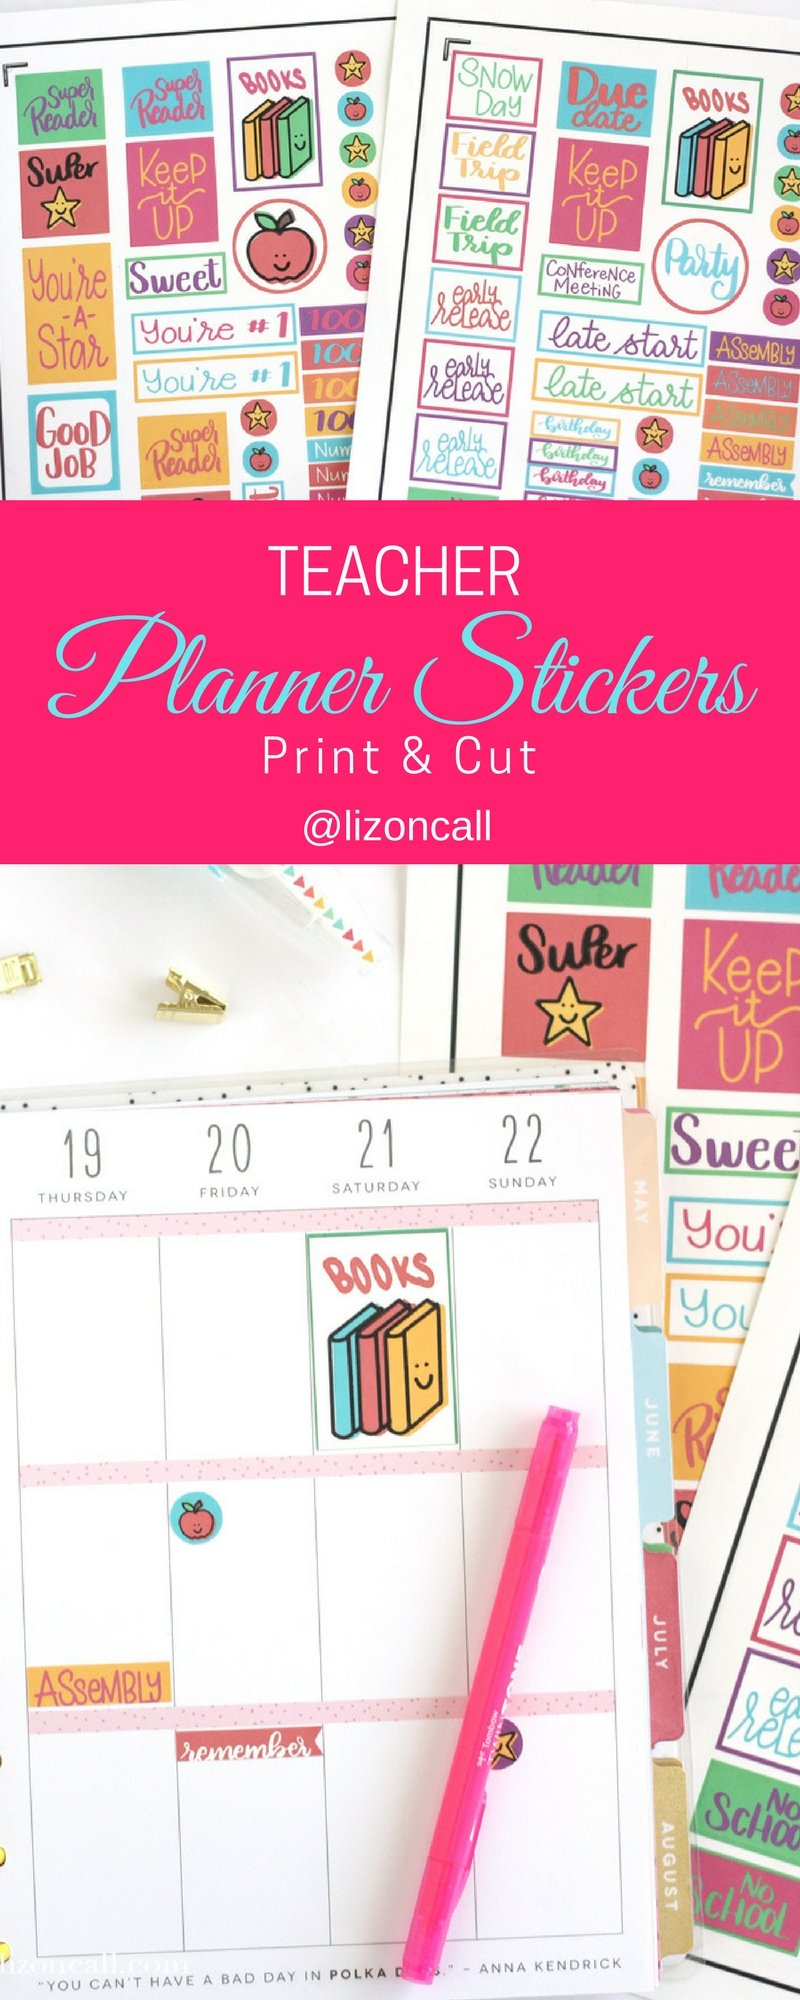 Whether you're planning your month or grading papers, these free teacher planner stickers will be a fun addition to any paper. Cutting them out is easy with the print and cut feature of your Cricut. #plannerstickers #teacher #printandcut